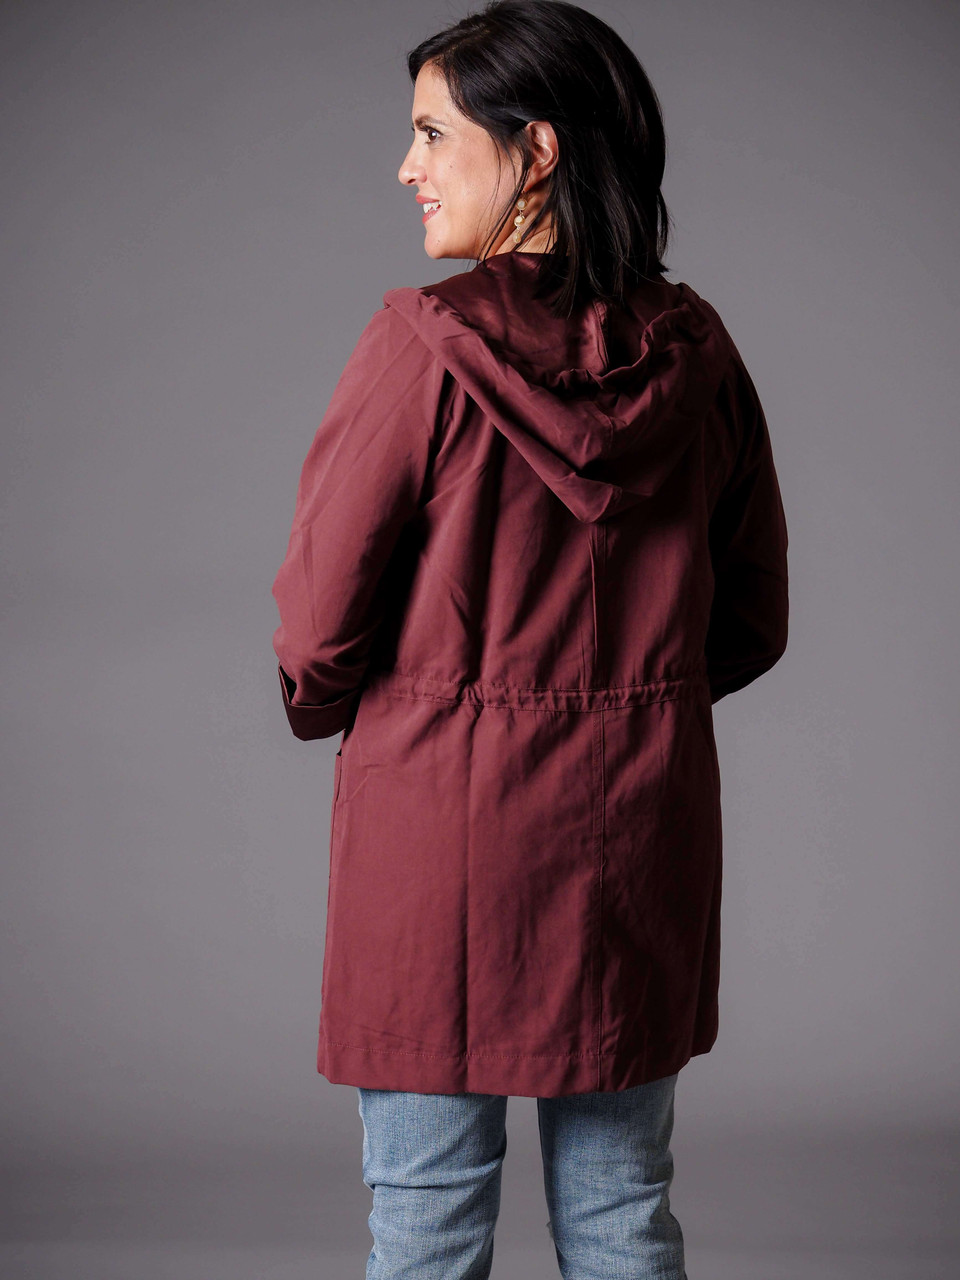 purple maroon burgundy hooded utility jacket